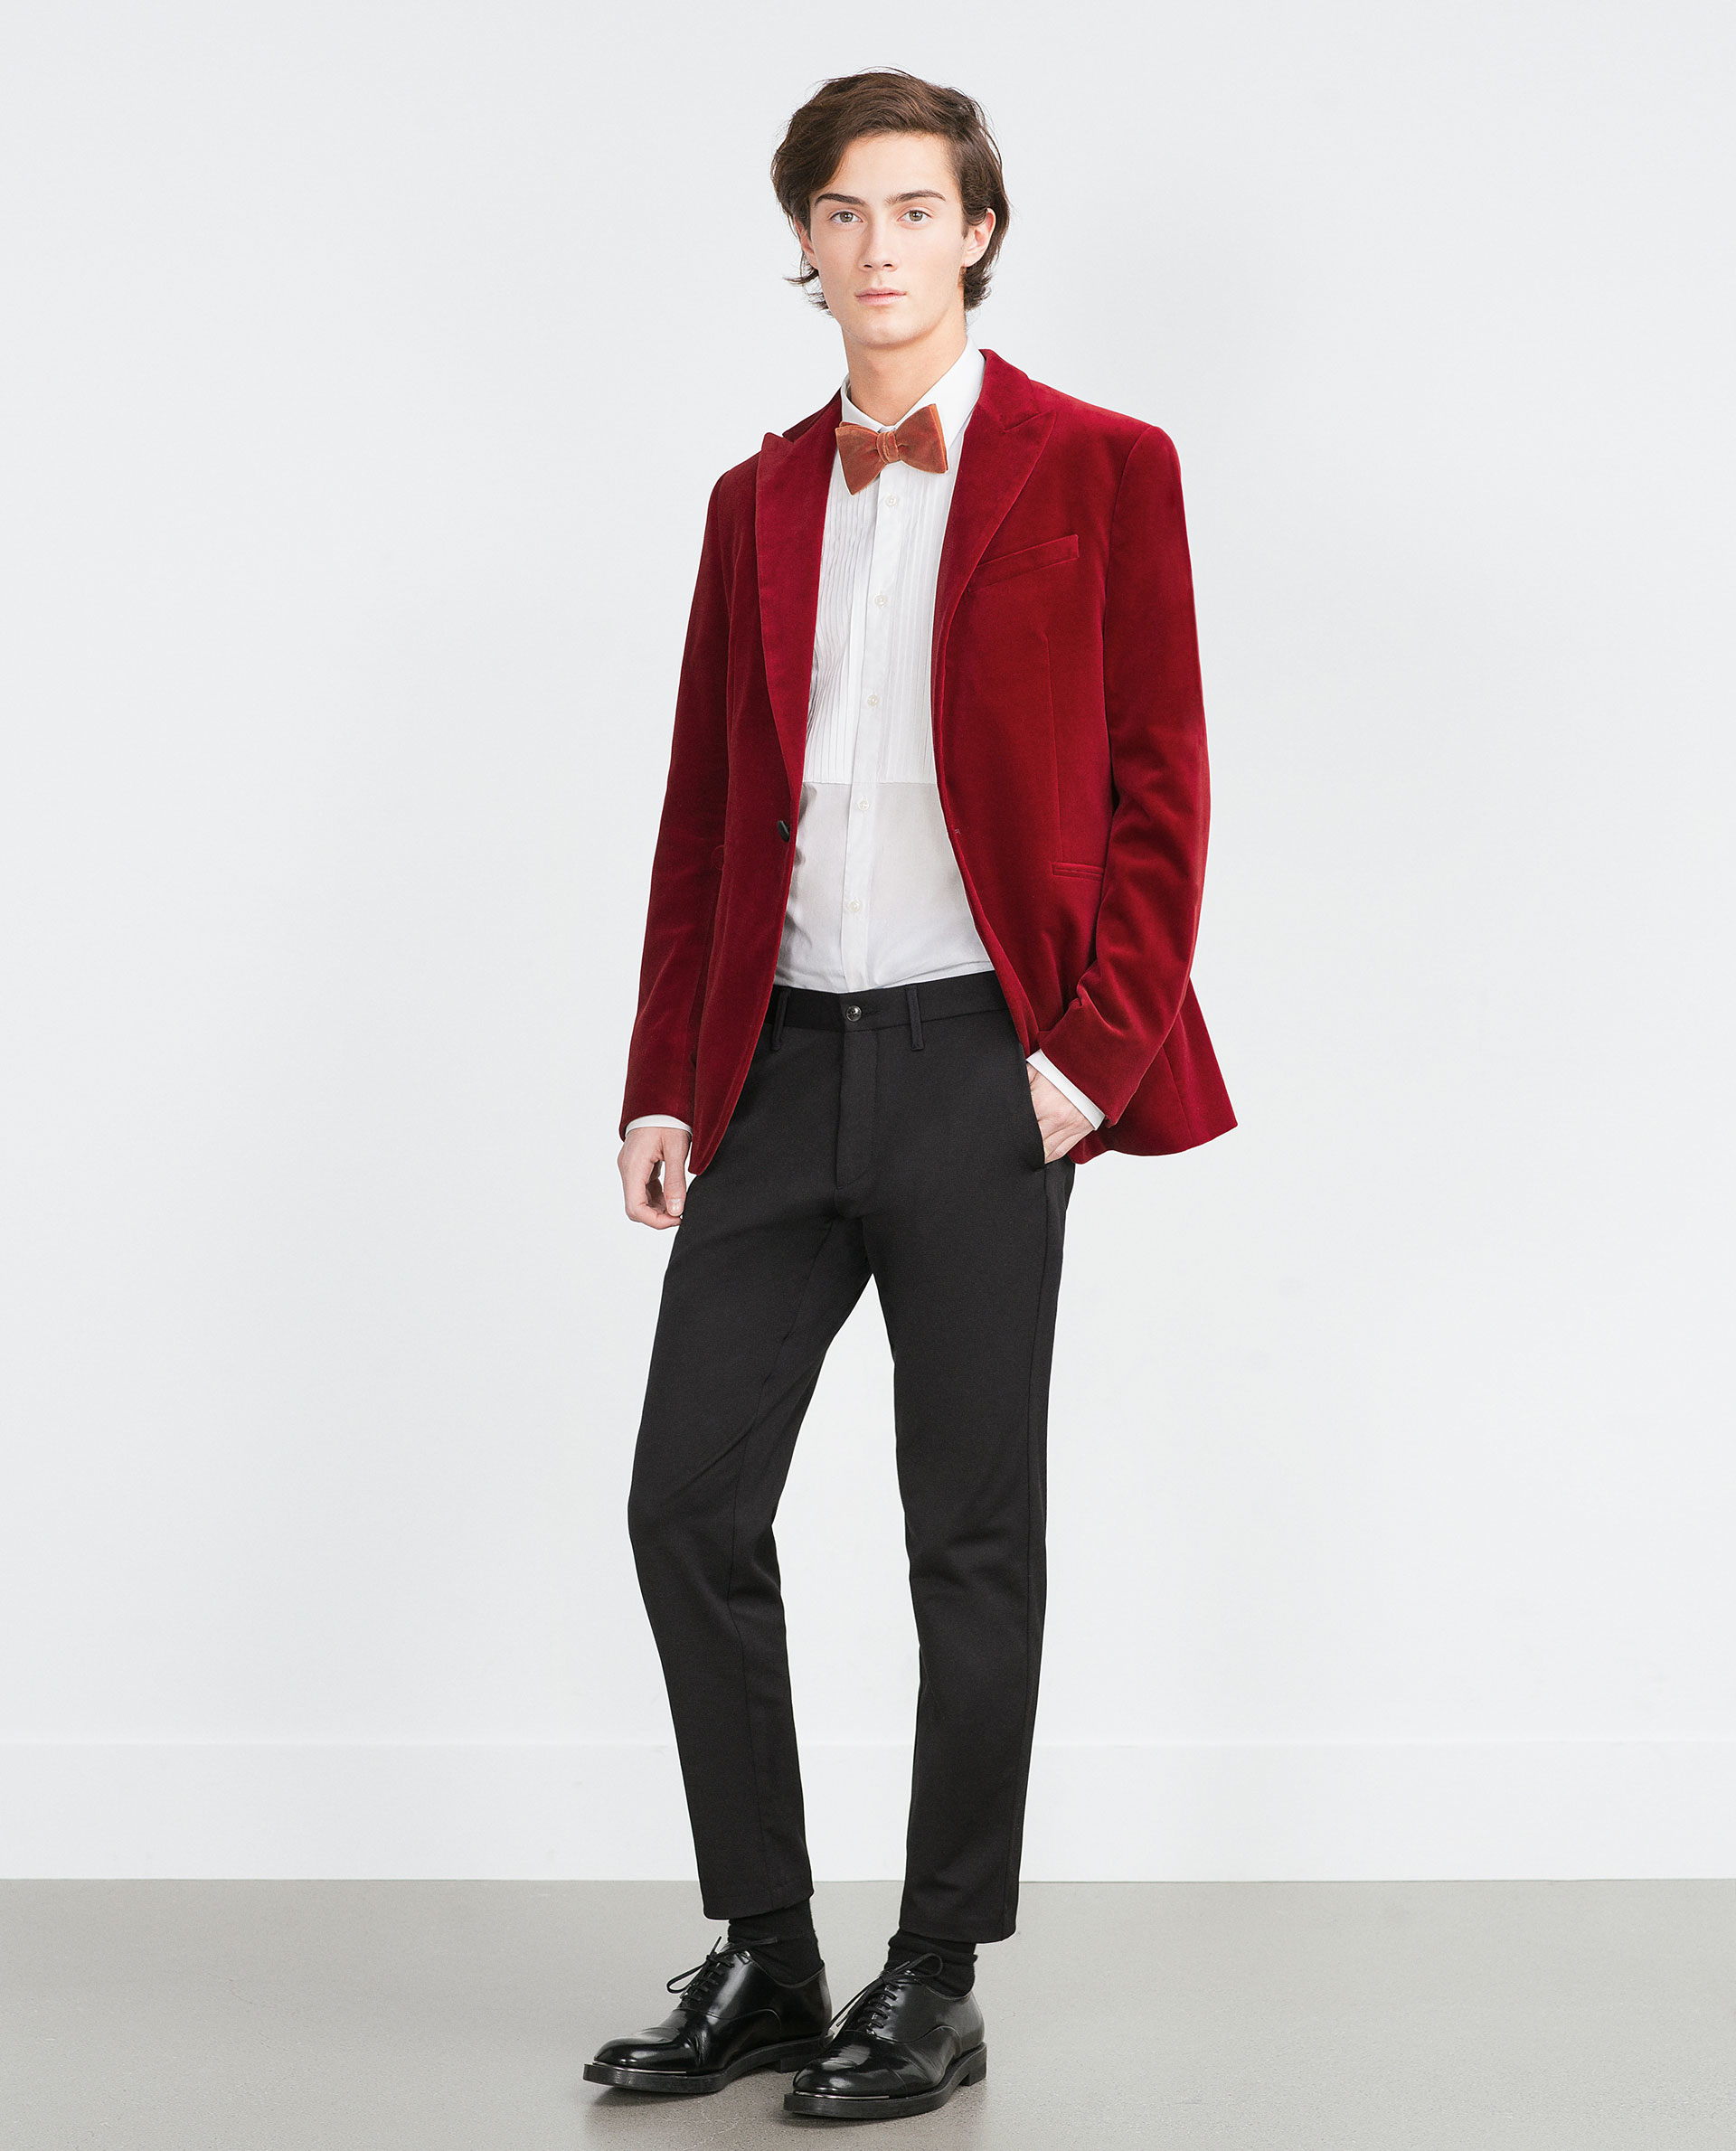 Red Velvet Blazer Mens Photo Album - Reikian